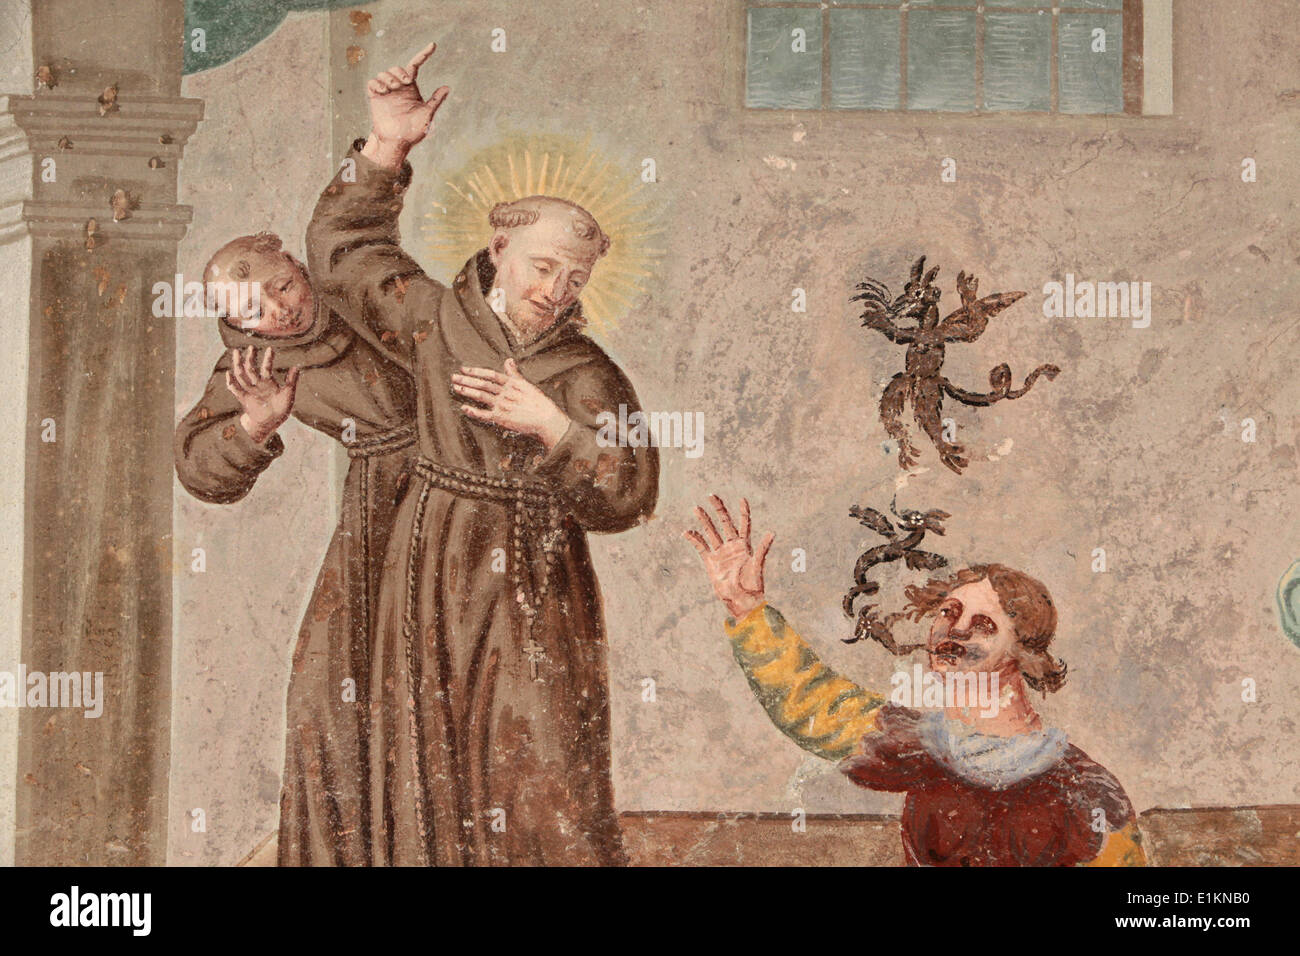 Francis Of Assisi Painting Stockfotos & Francis Of Assisi Painting ...